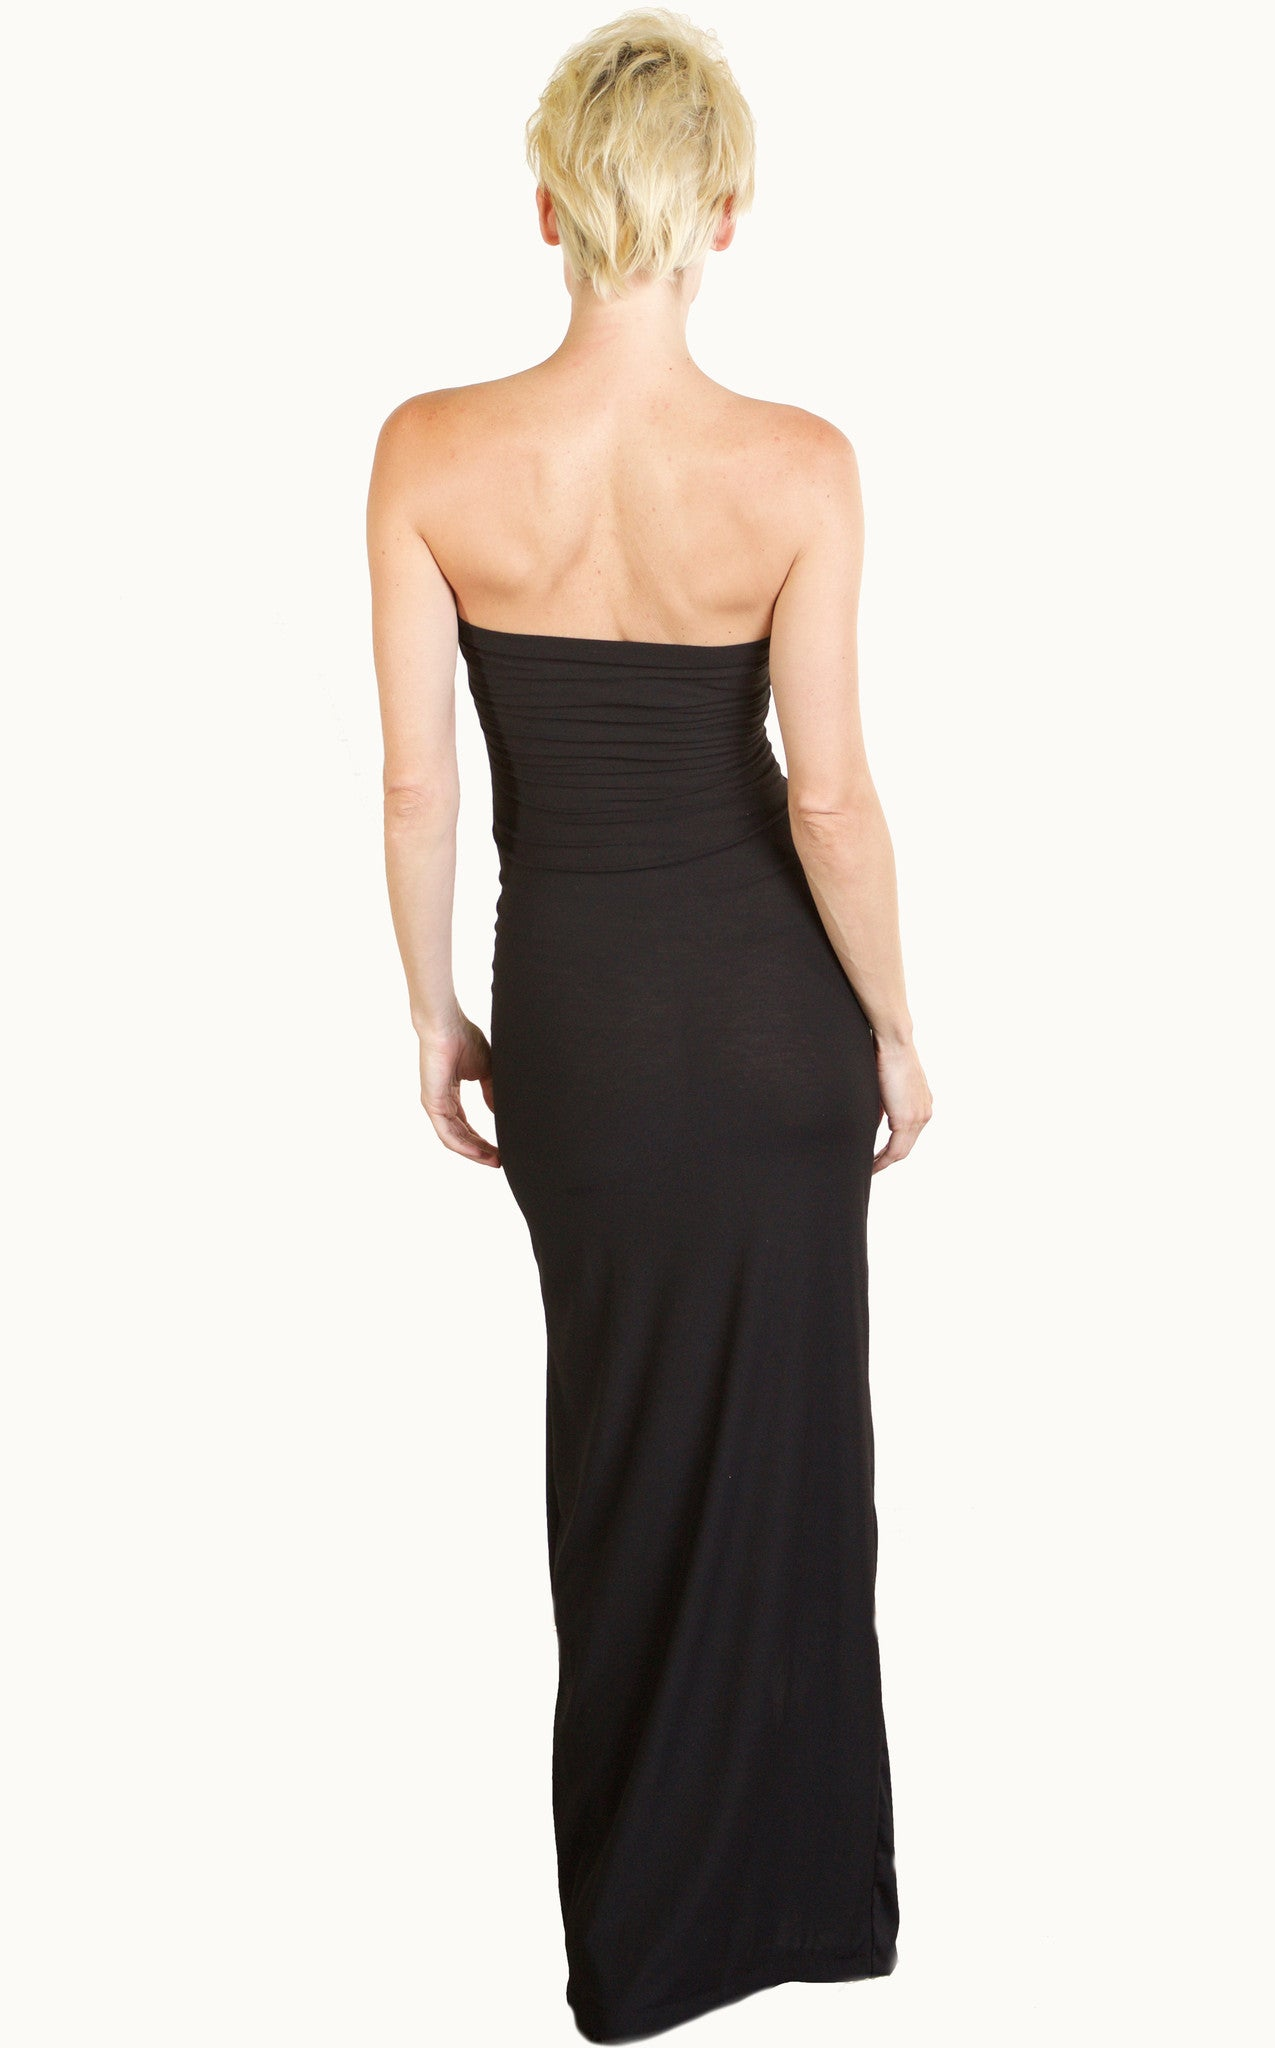 Floor Length Body Dress in Sexy Body Con Black